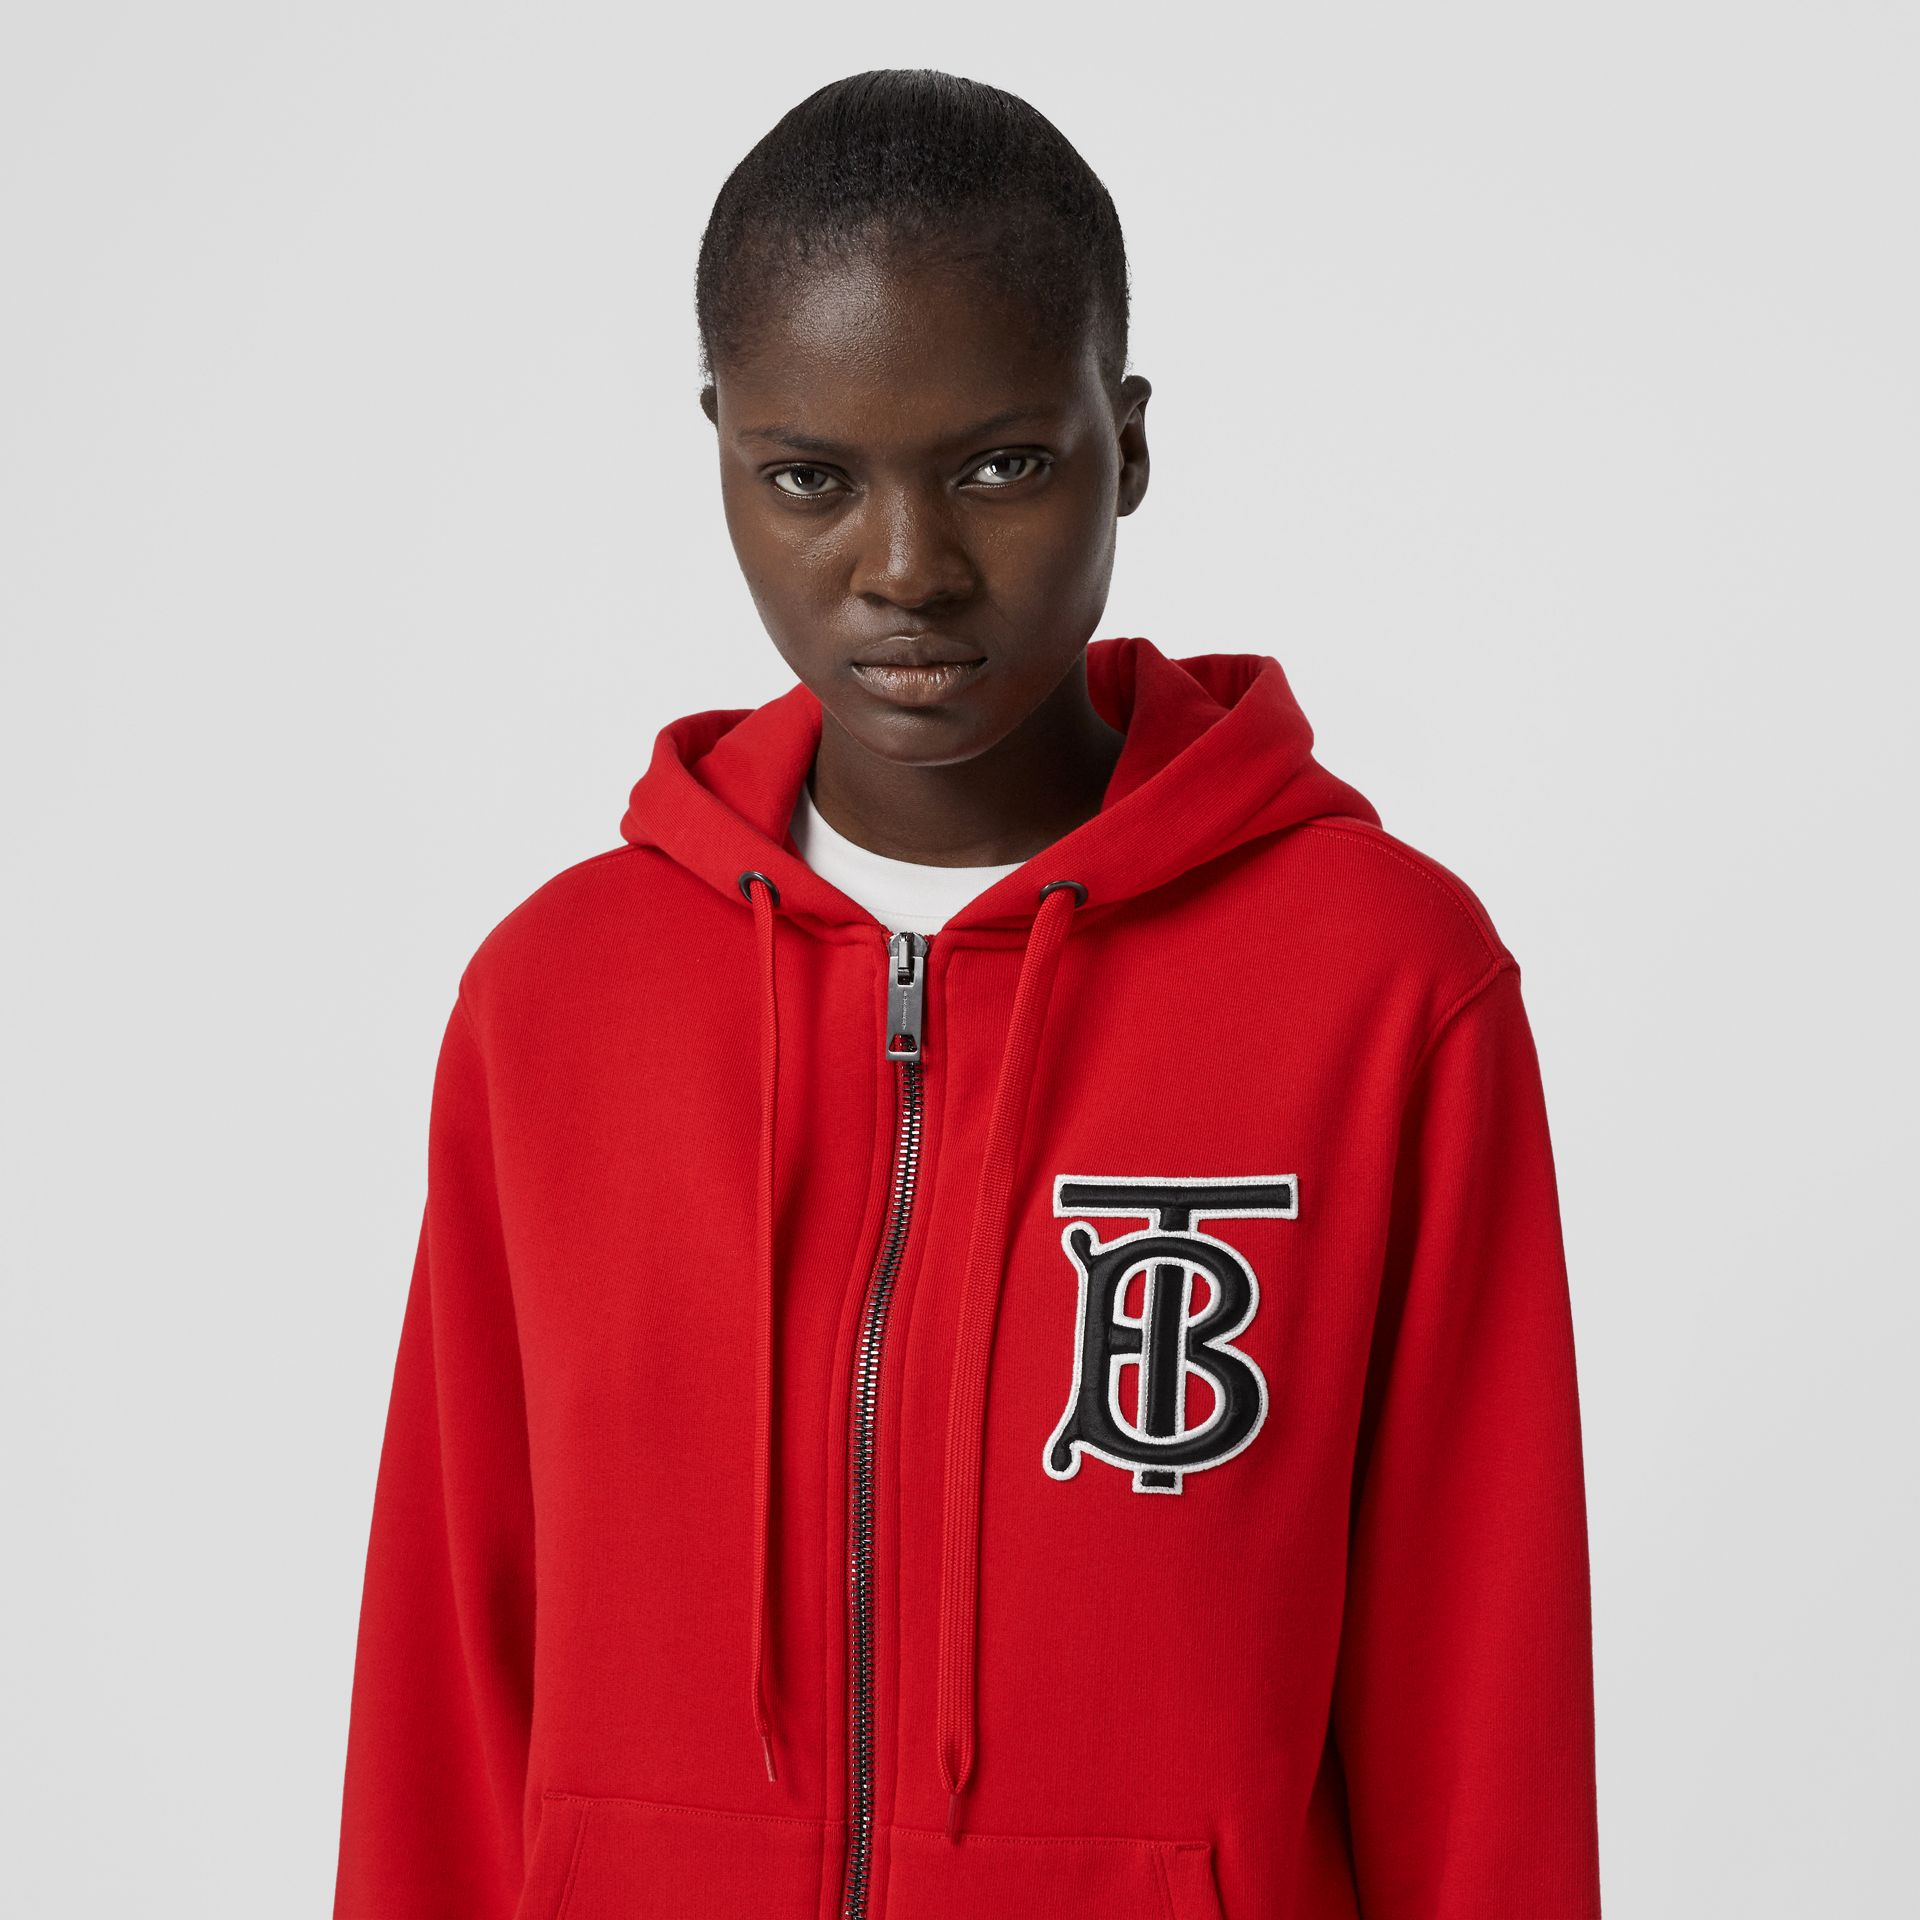 Monogram Motif Cotton Oversized Hooded Top in Bright Red - Women | Burberry - gallery image 1